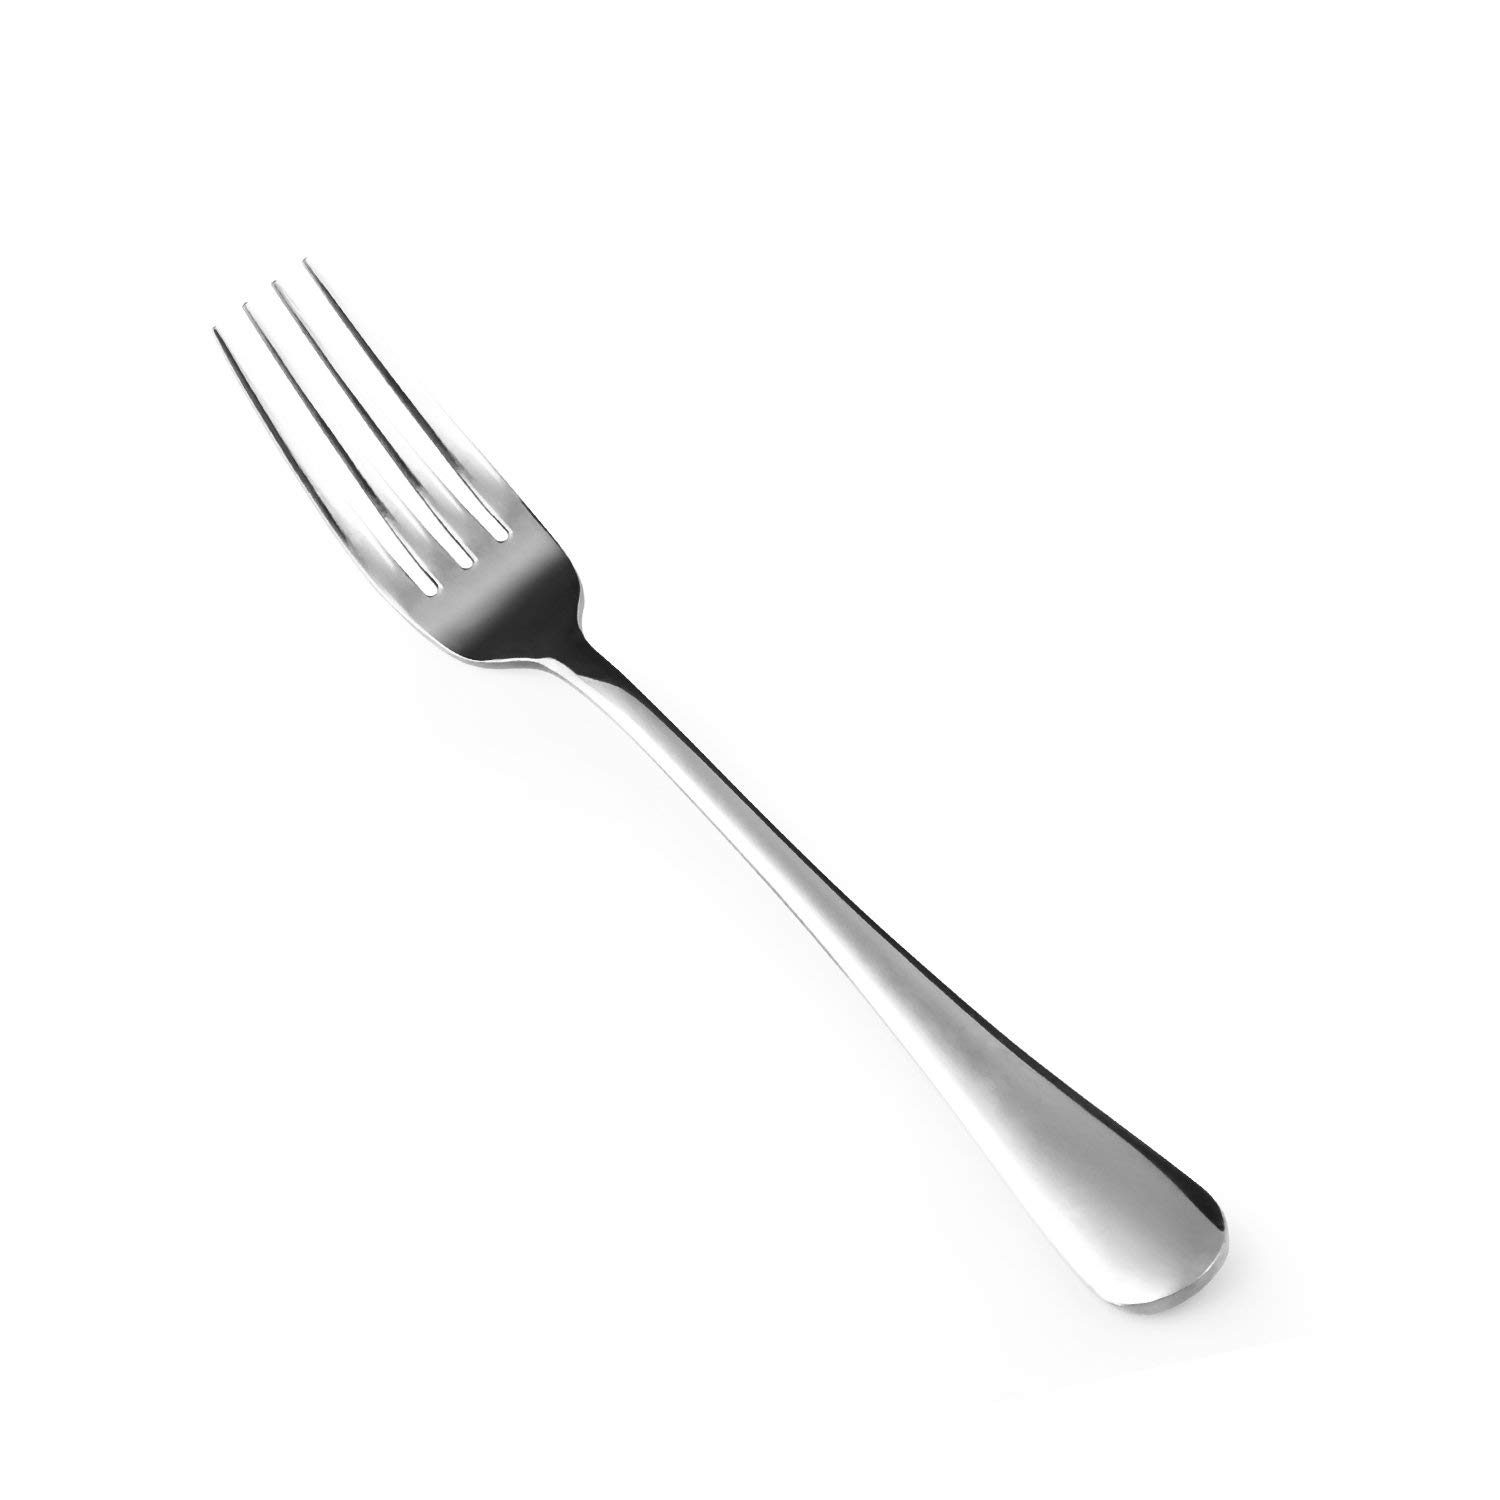 Hiware 24-piece Good Stainless Steel Dinner Forks Cutlery Set, 8 Inches